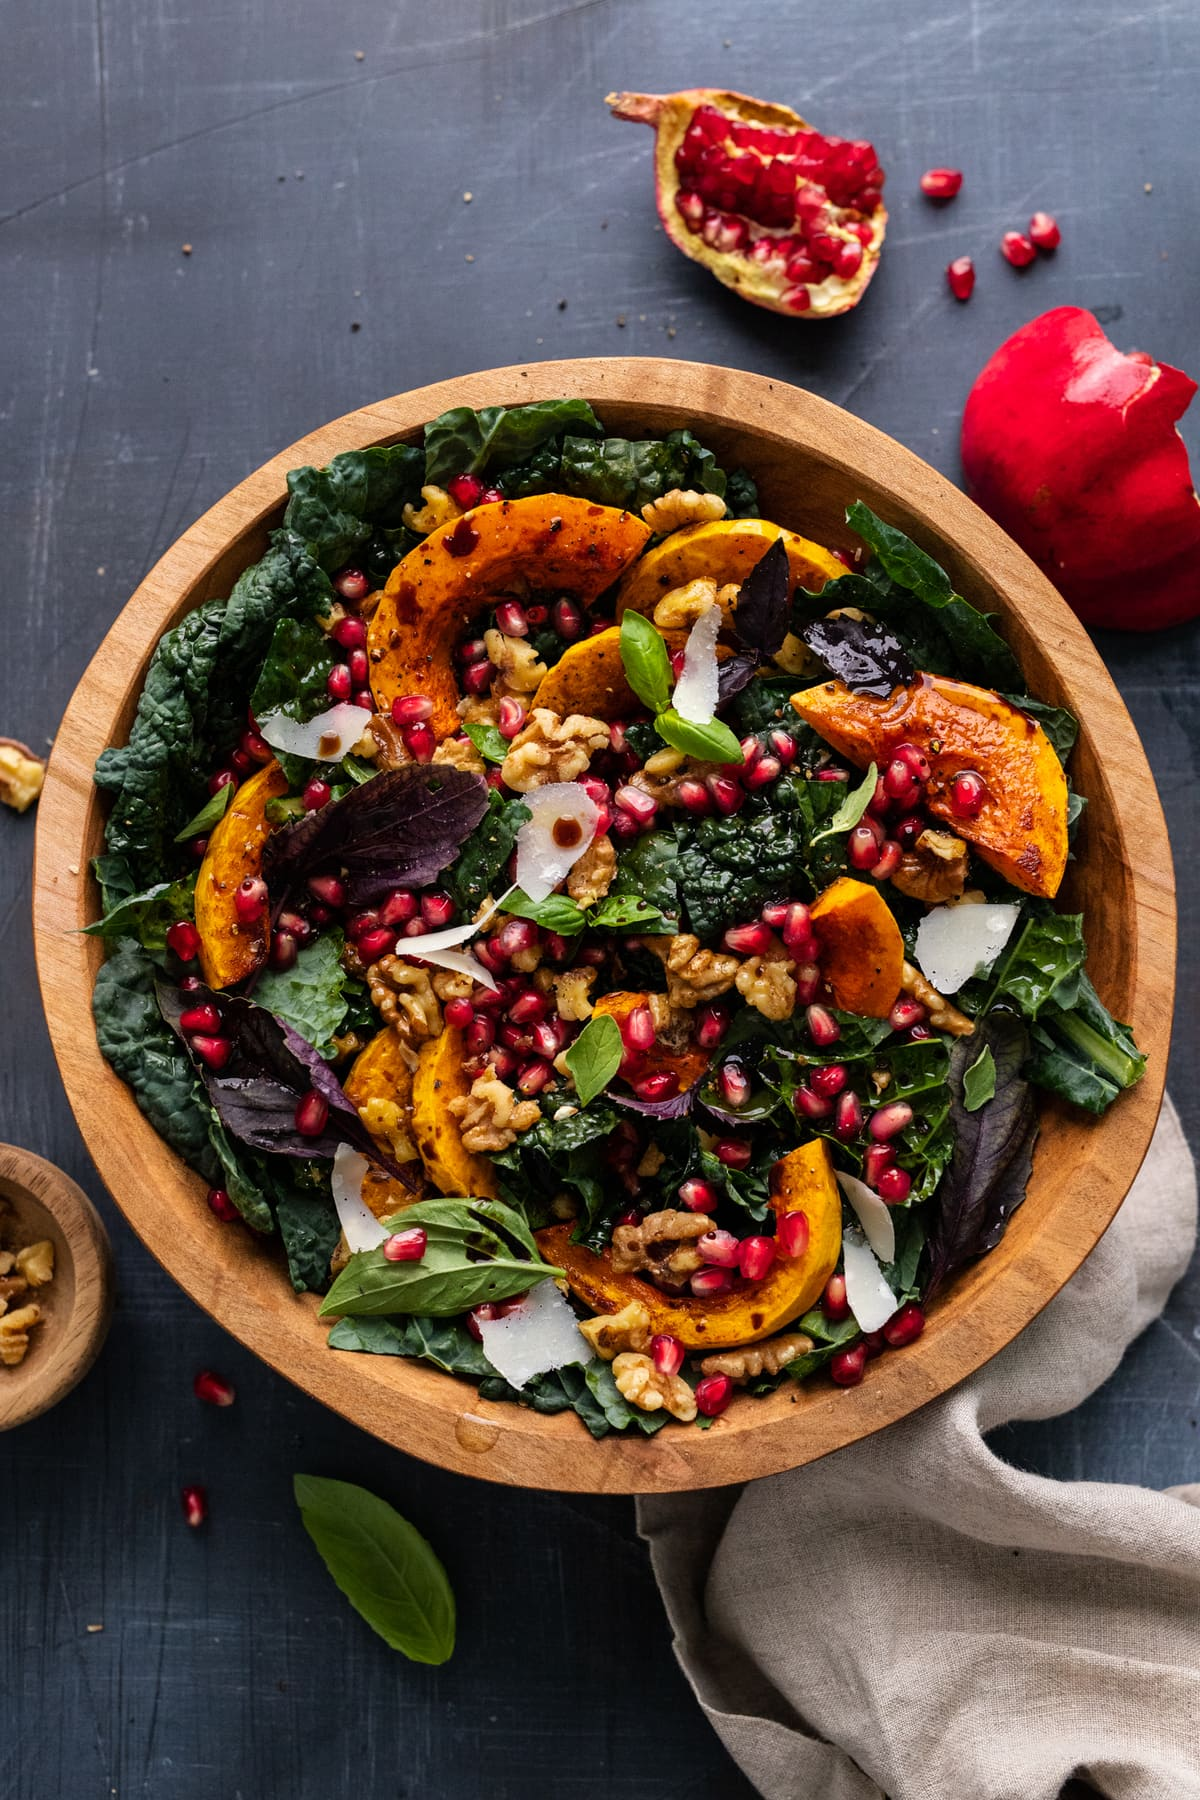 Butternut squash salad with kale and pomegranate seeds in a large wooden bowl. The salad is displayed on a gray background with a gray napkin, pomegranate seeds, and nuts arranged next to it.